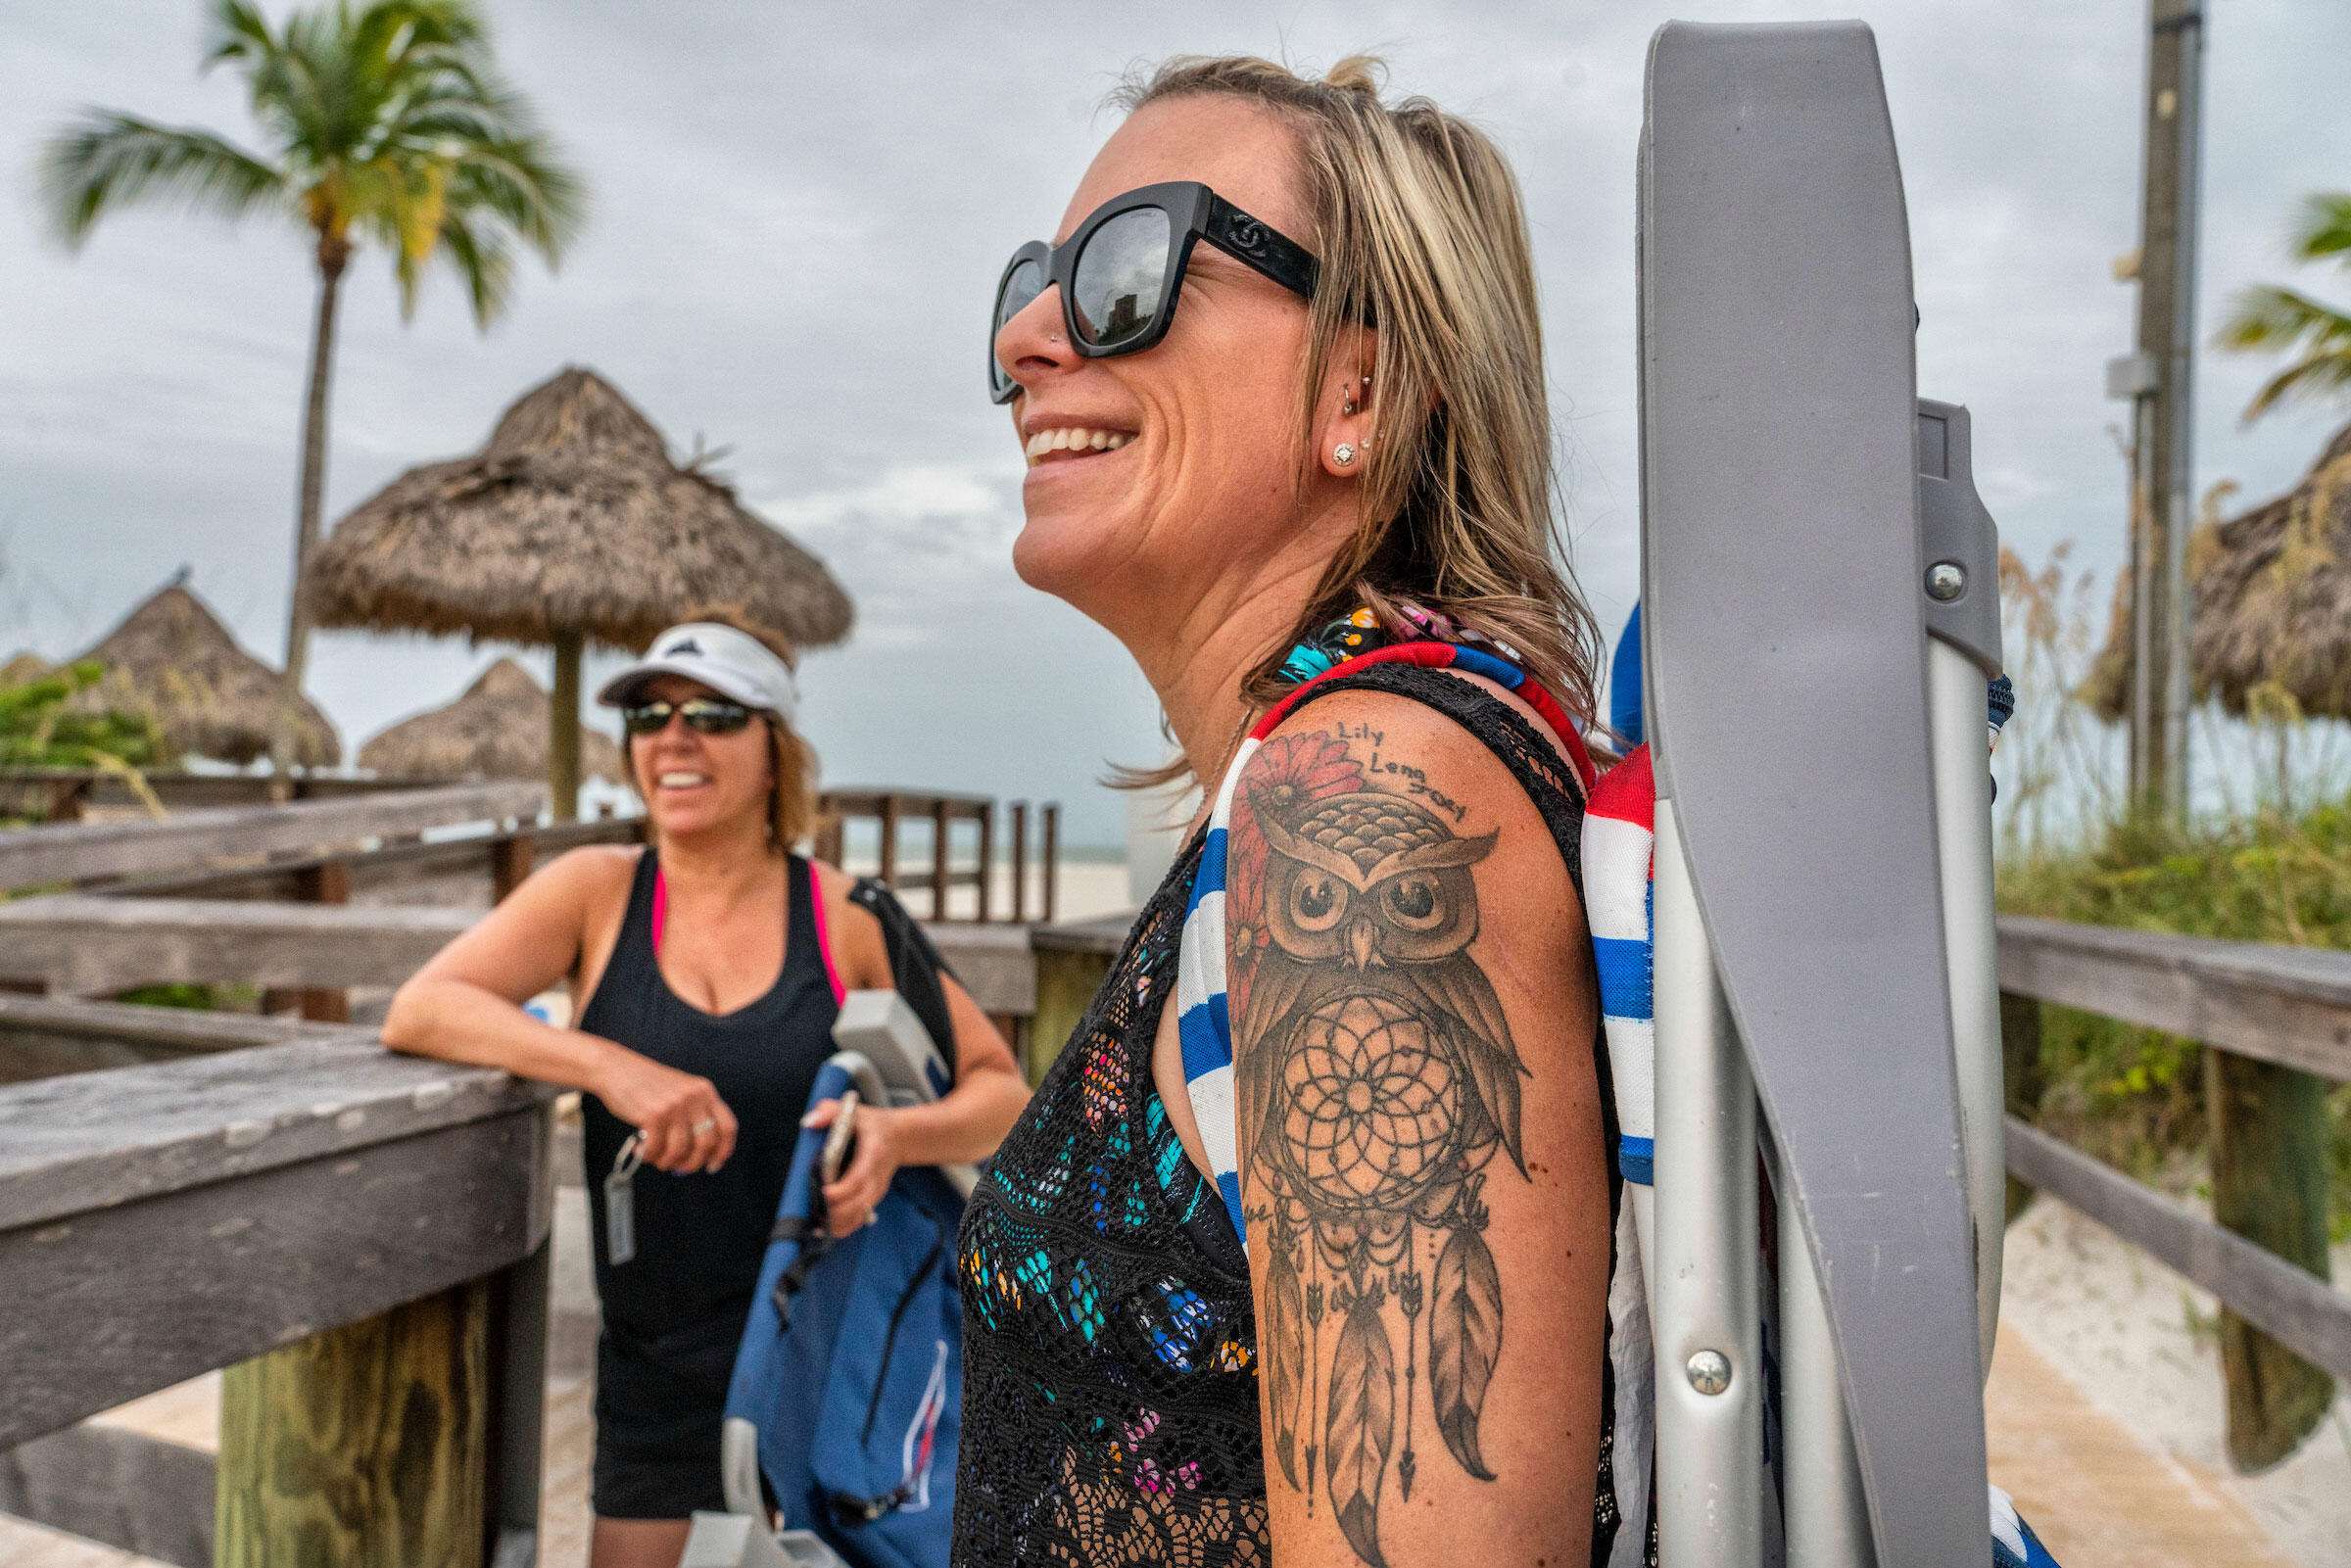 """Danielle Lepski says she is 'owl obsessed,"""" as evidenced by her tattoo. A New Jersey resident, she loves to see the owls when visiting her in-laws on Marco Island. Karine Aigner"""